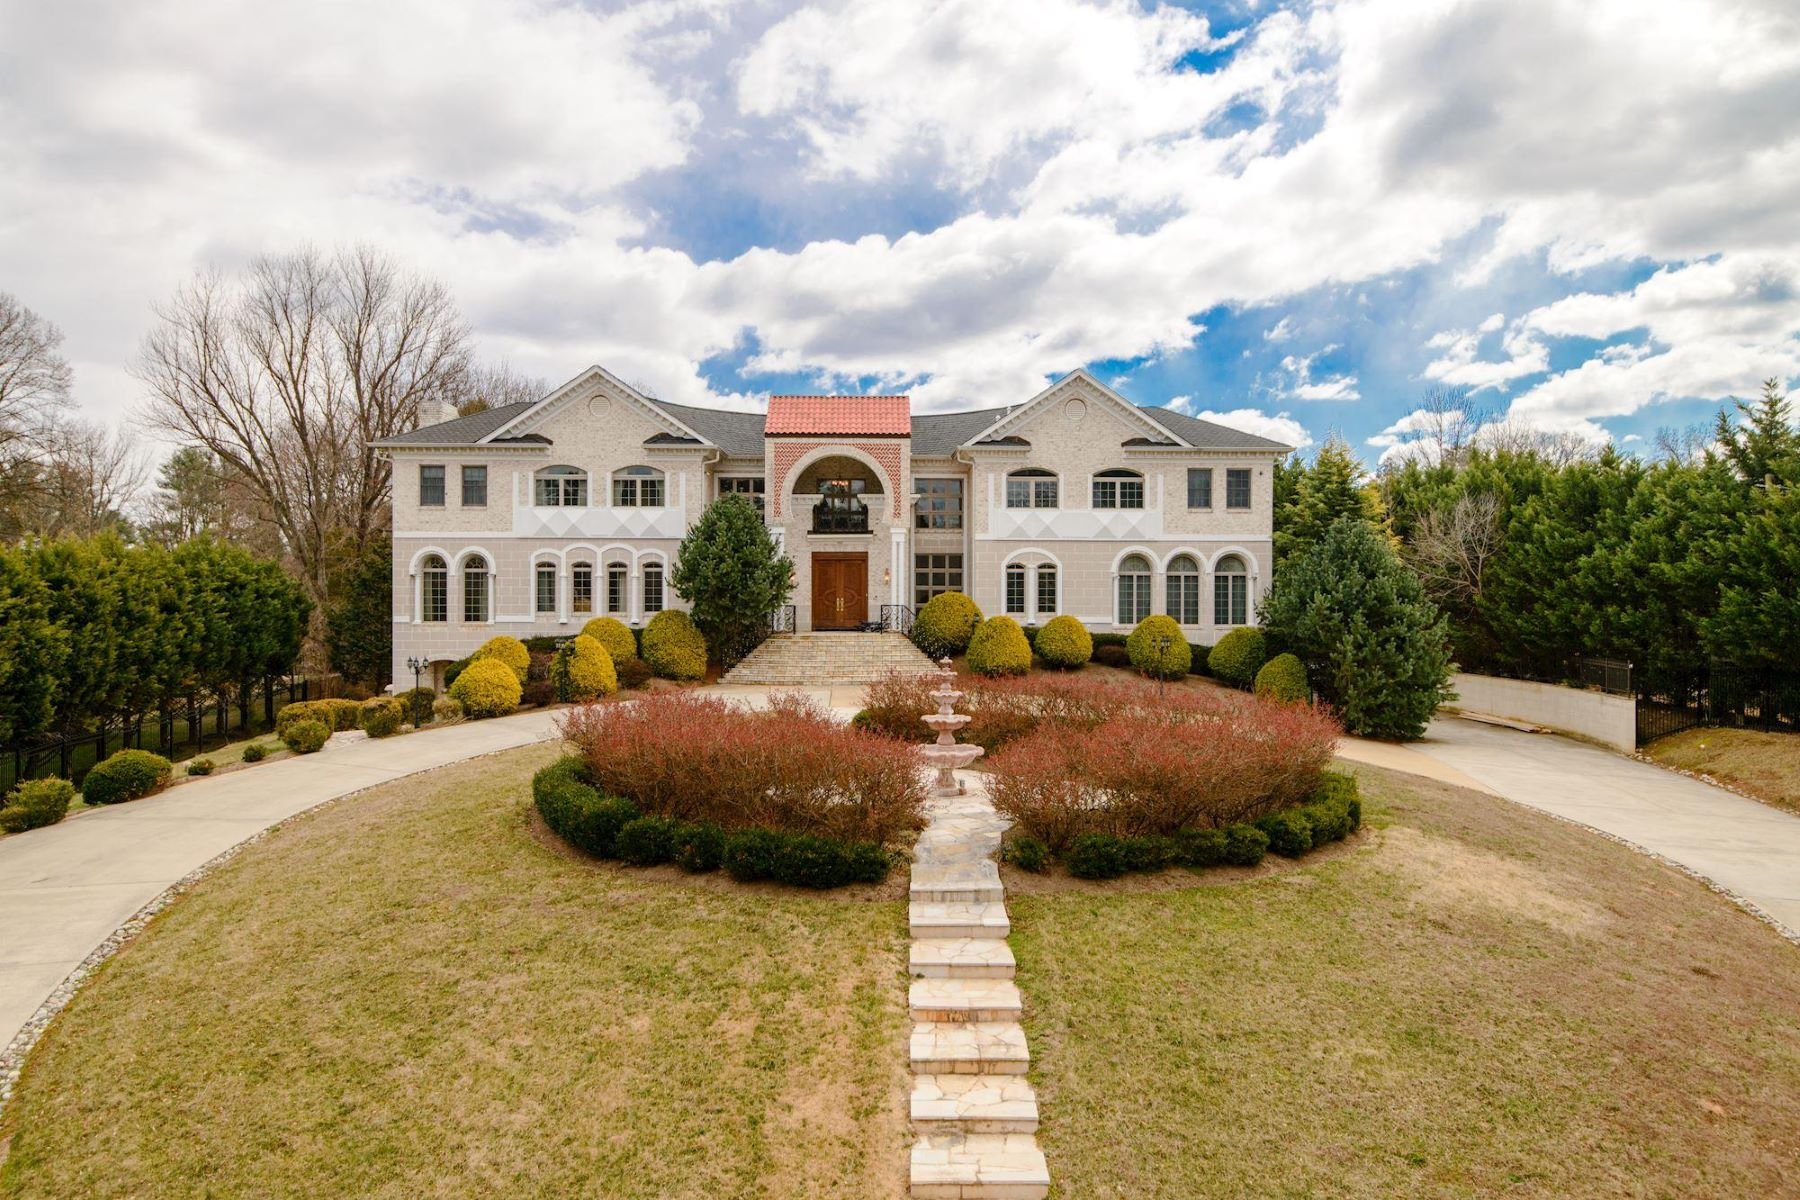 Single Family Home for Rent at 1383 Woodside Dr 1383 Woodside Dr McLean, Virginia 22102 United States